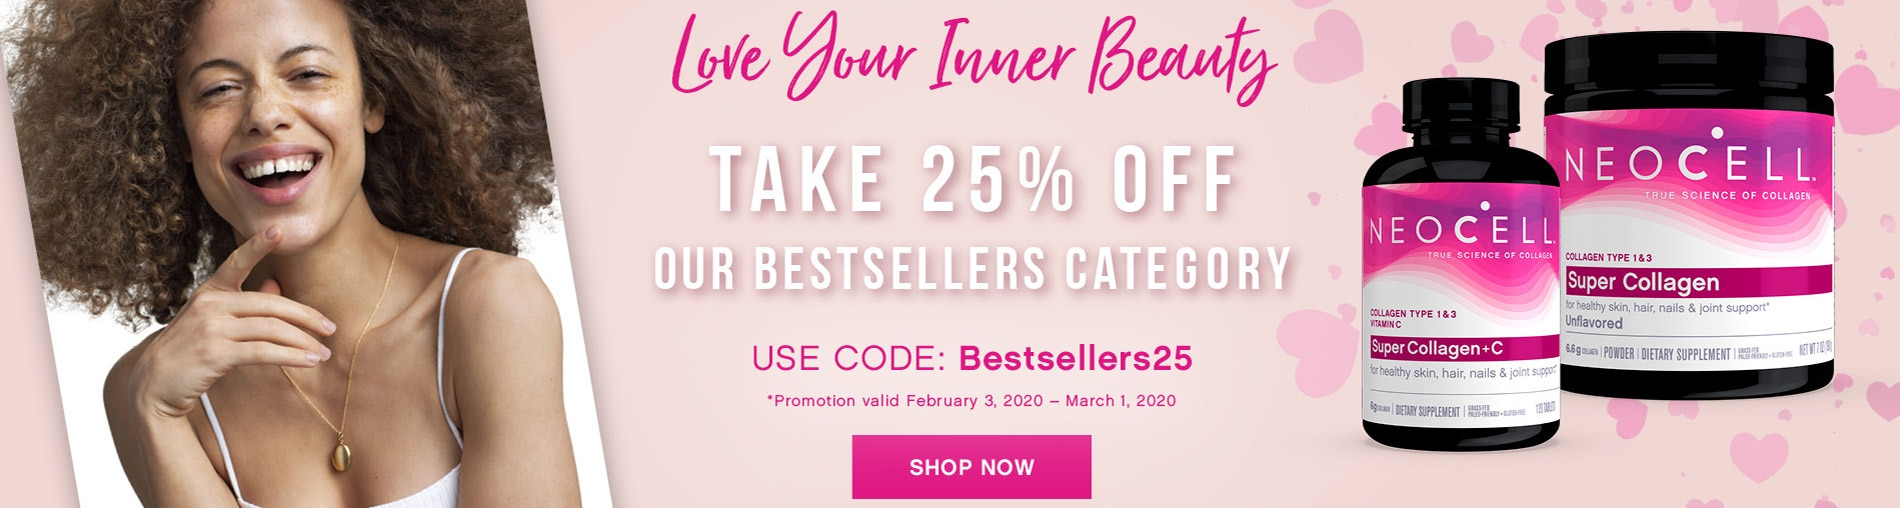 Love Your Inner Beauty! Take 25% OFF Our Bestsellers Category. Use Code: BESTSELLERS25. Shop Now!